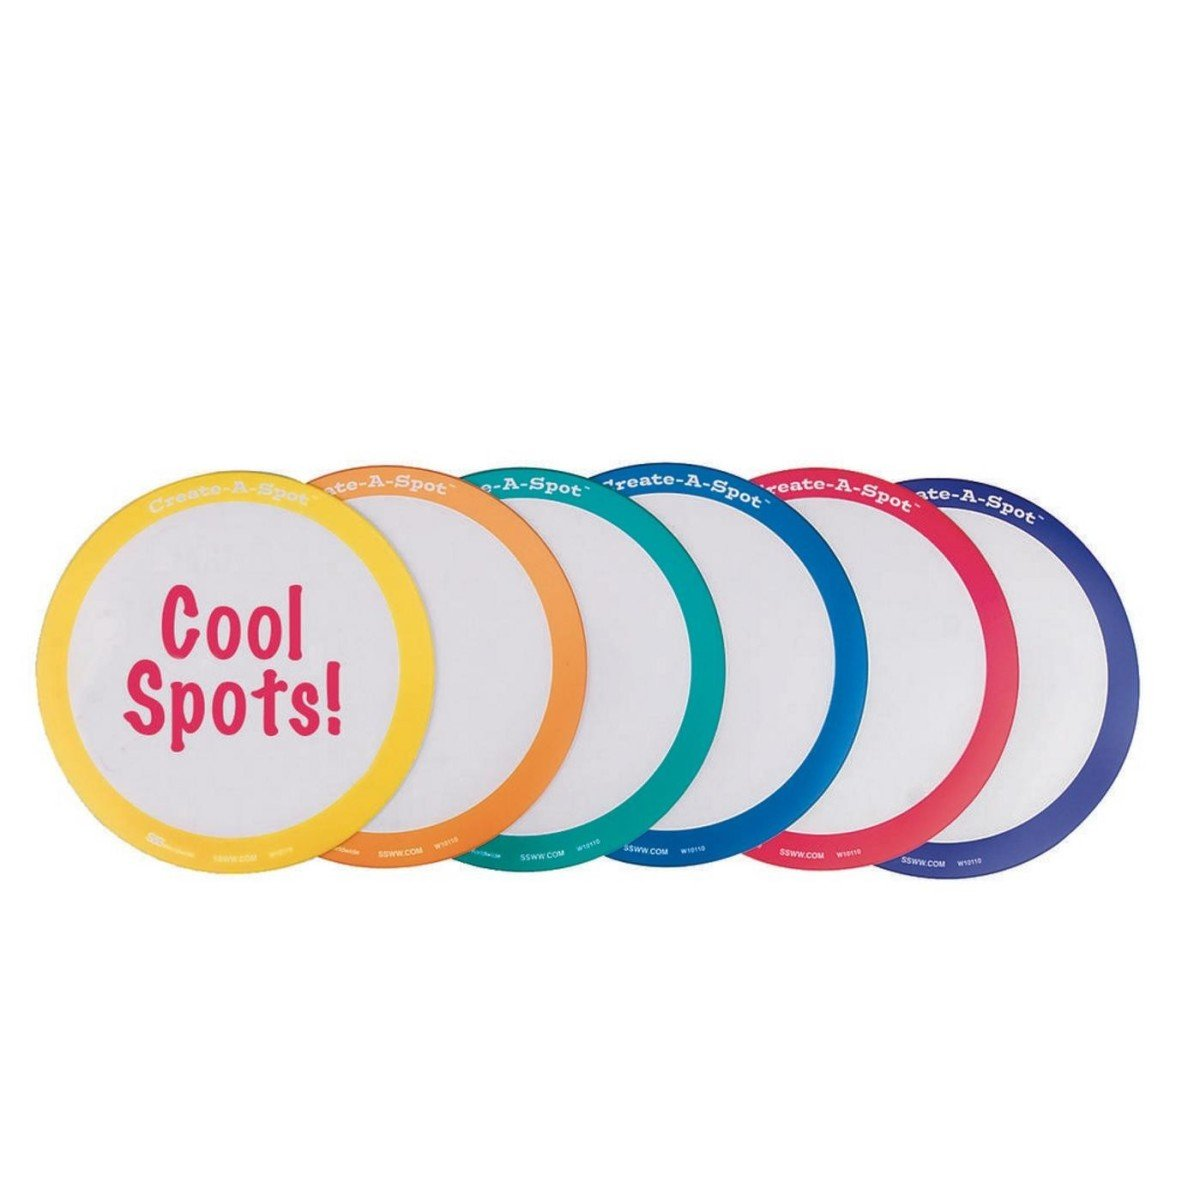 Create-A-Spot Markers Set of 6